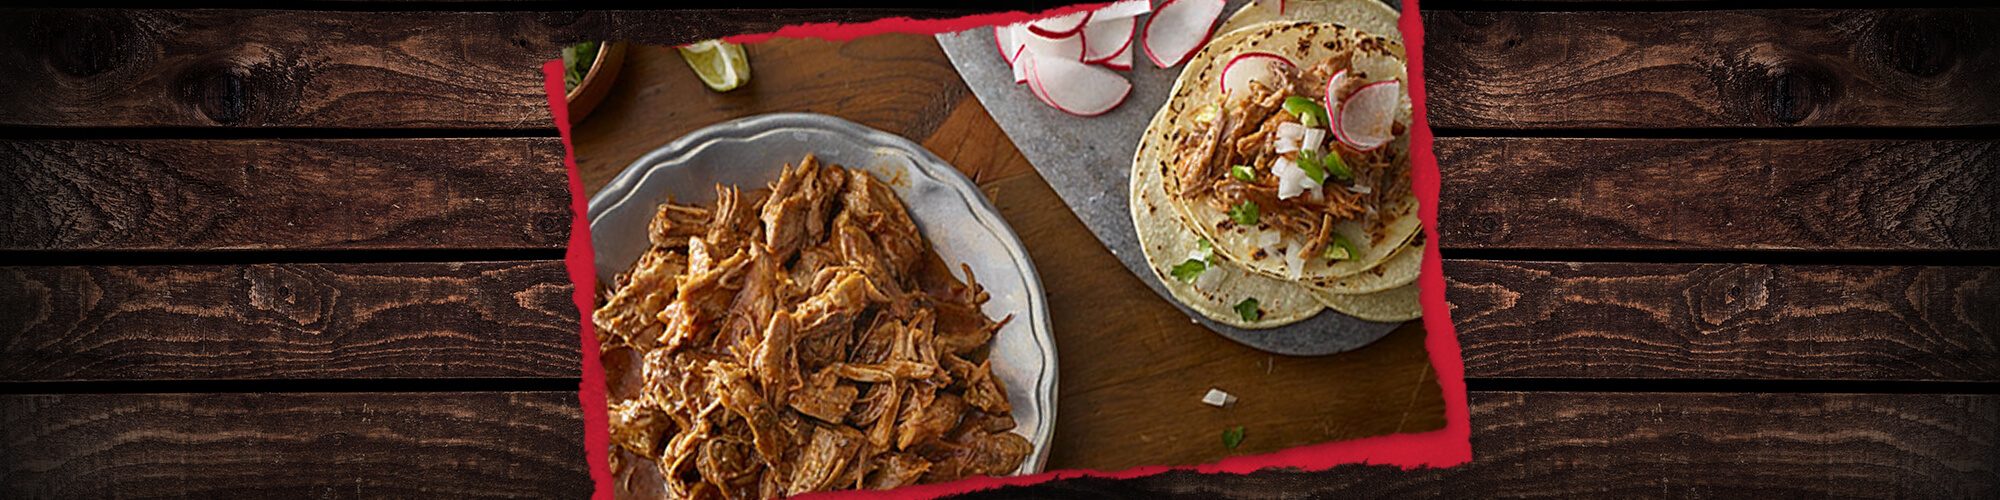 La_Victoria_Recipe_Slow_Cooker_Pulled_Pork_Rojo_Tacos